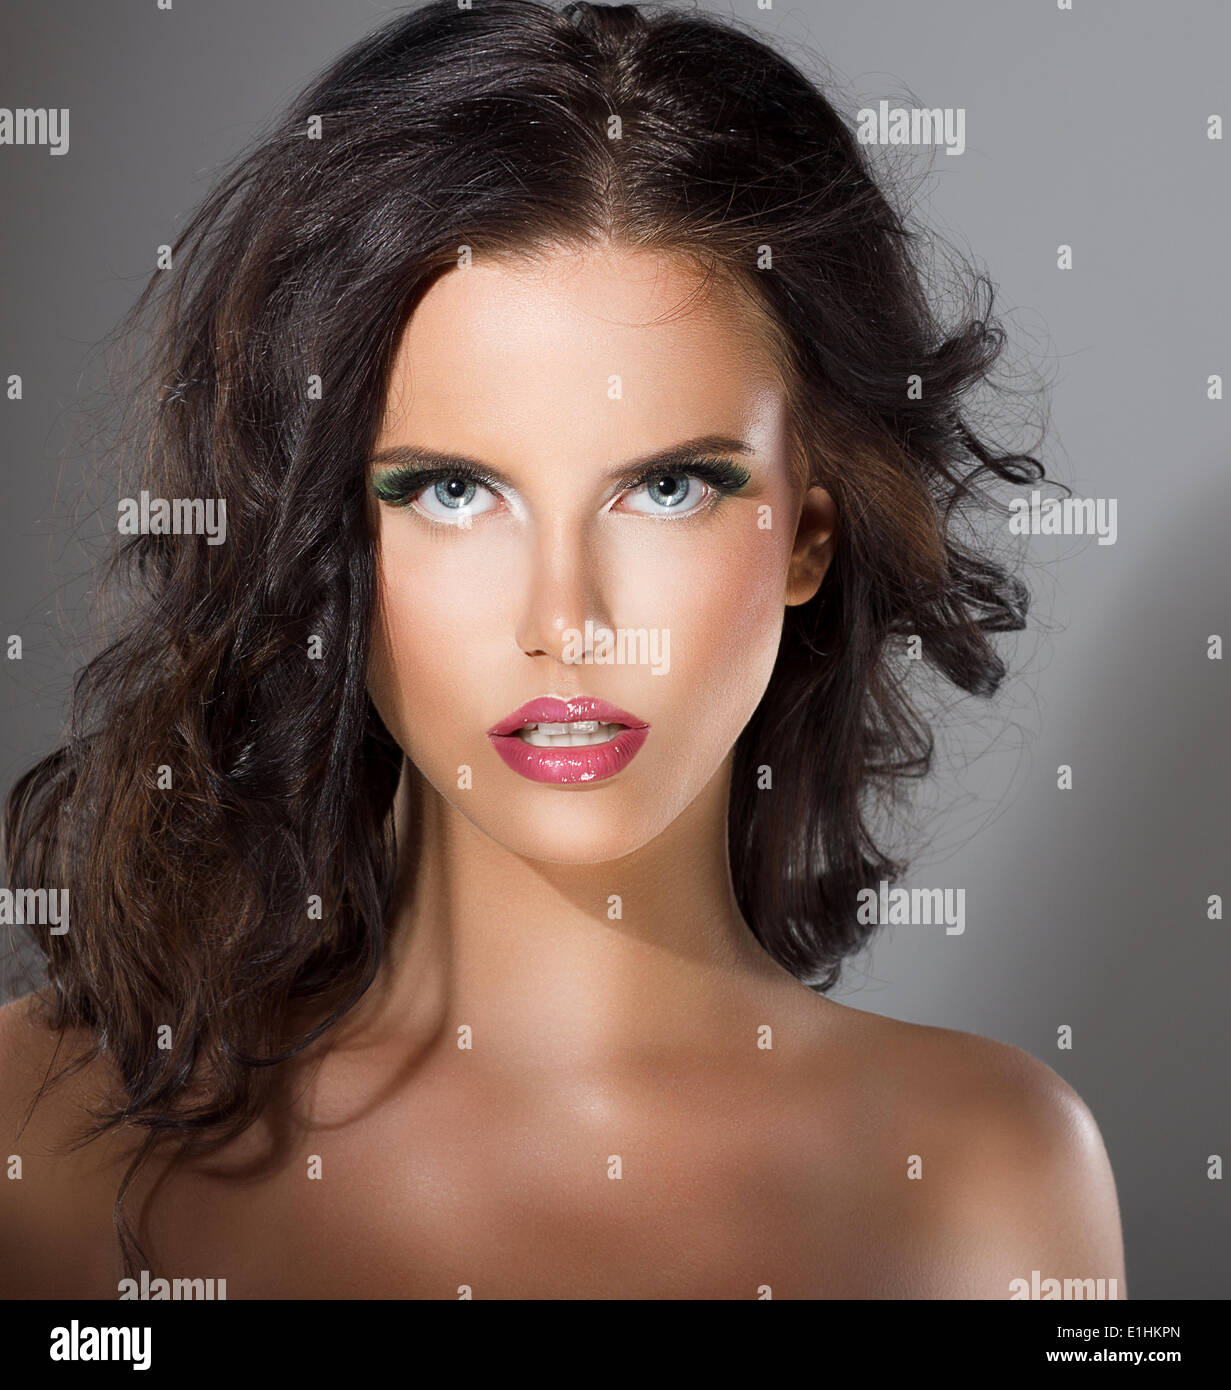 Glamorous Young Woman with Perfect Healthy Clean Skin. Natural Makeup - Stock Image